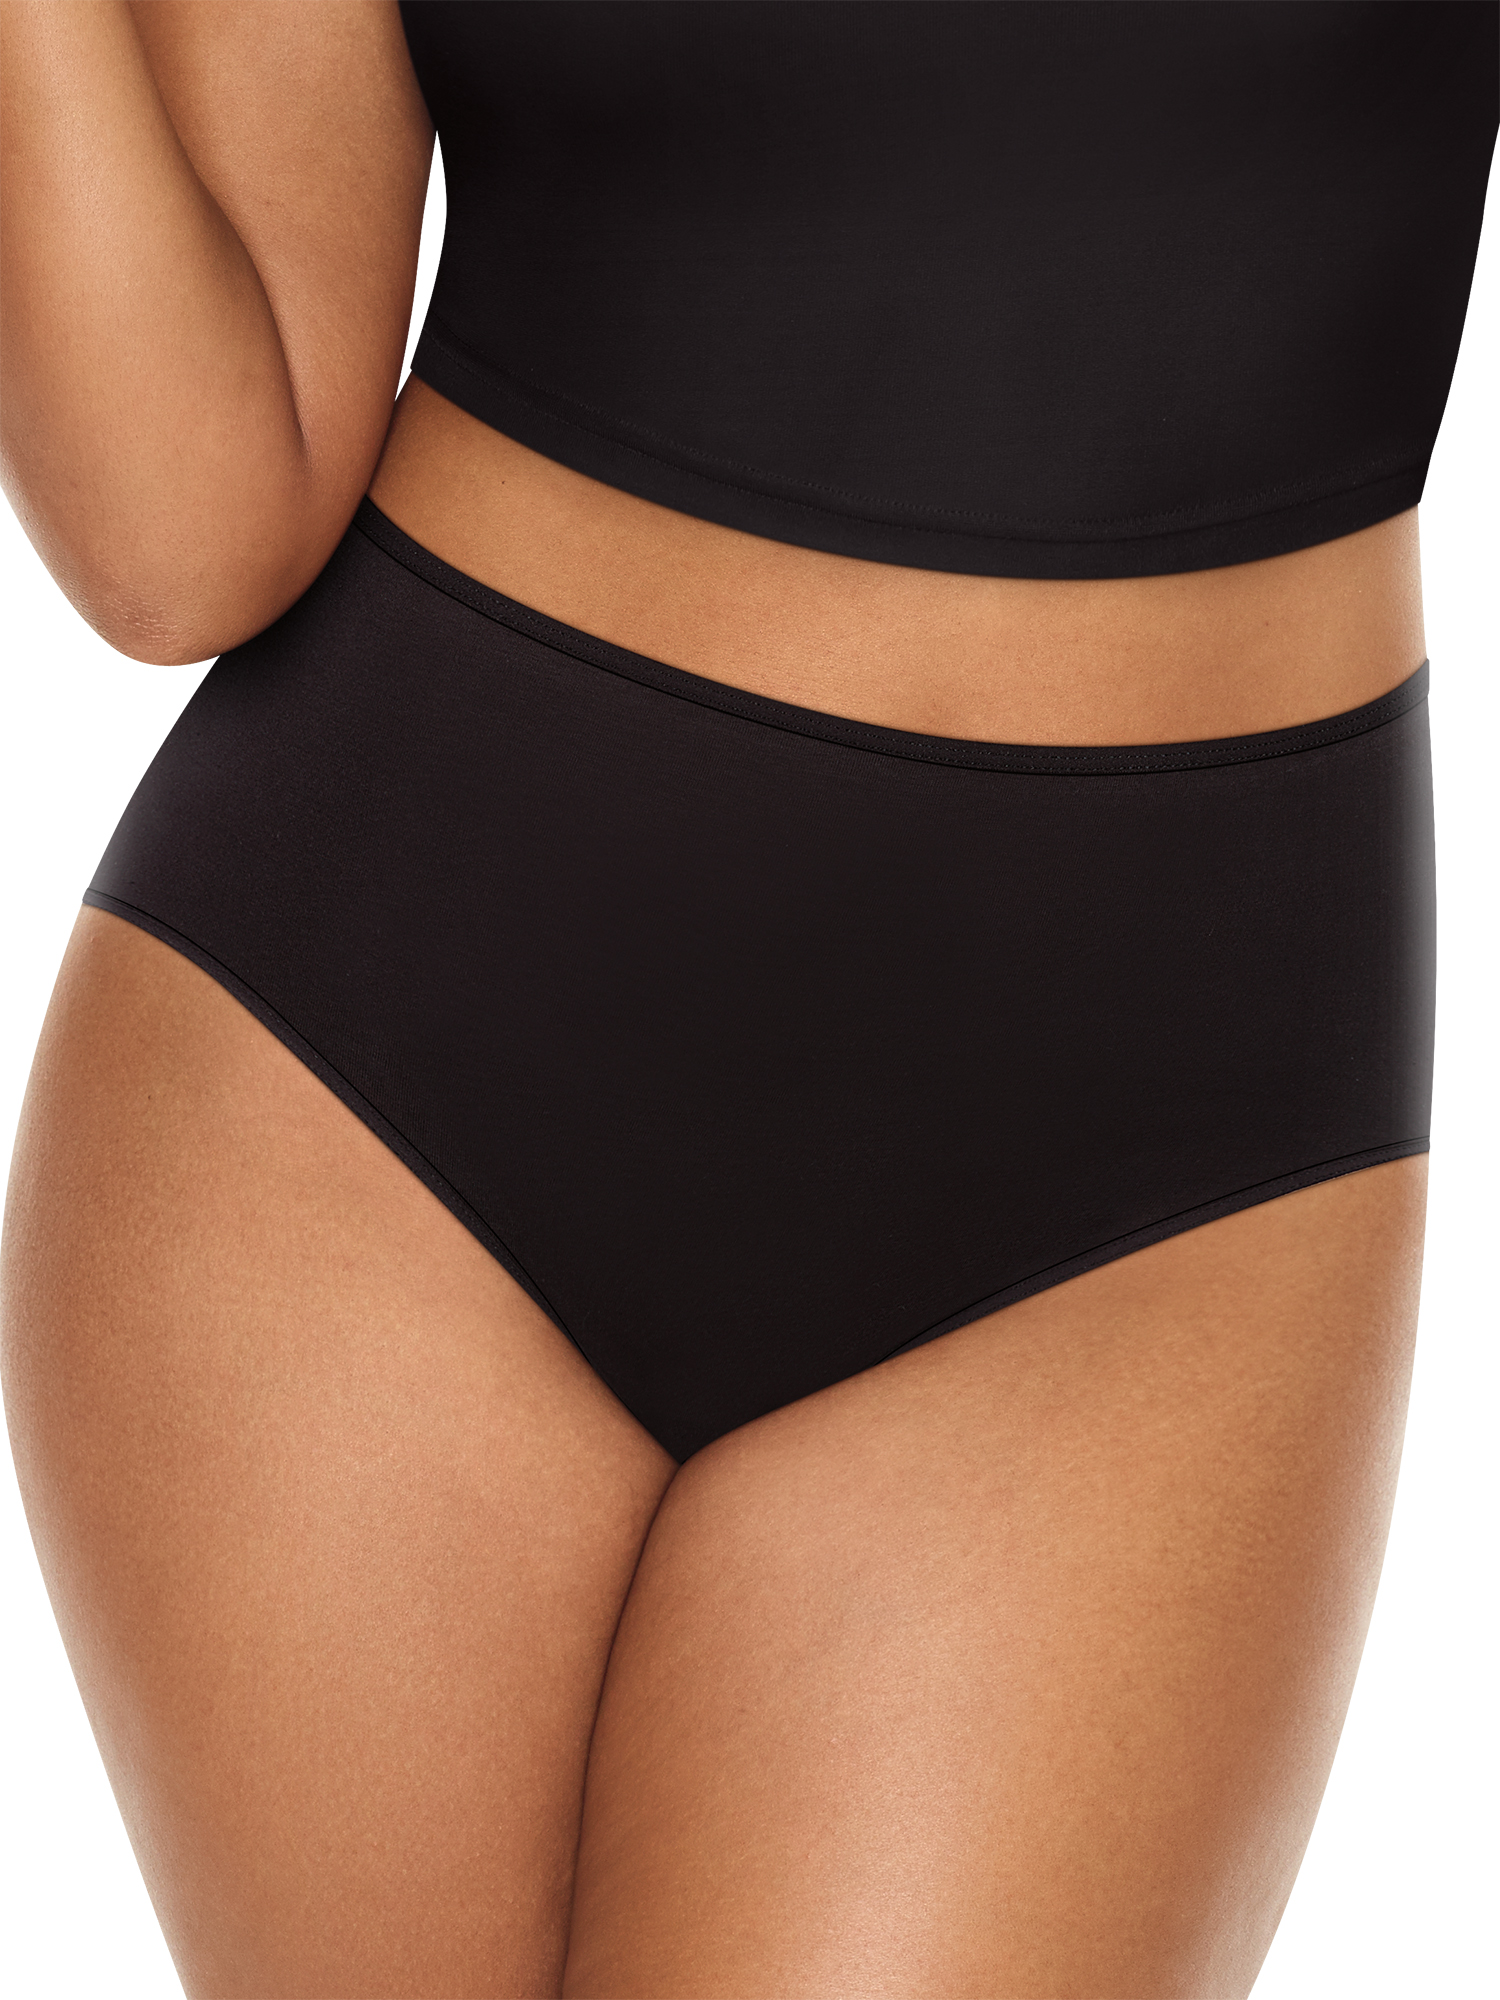 Just My Size Womens Microfiber Brief 6-Pack Briefs